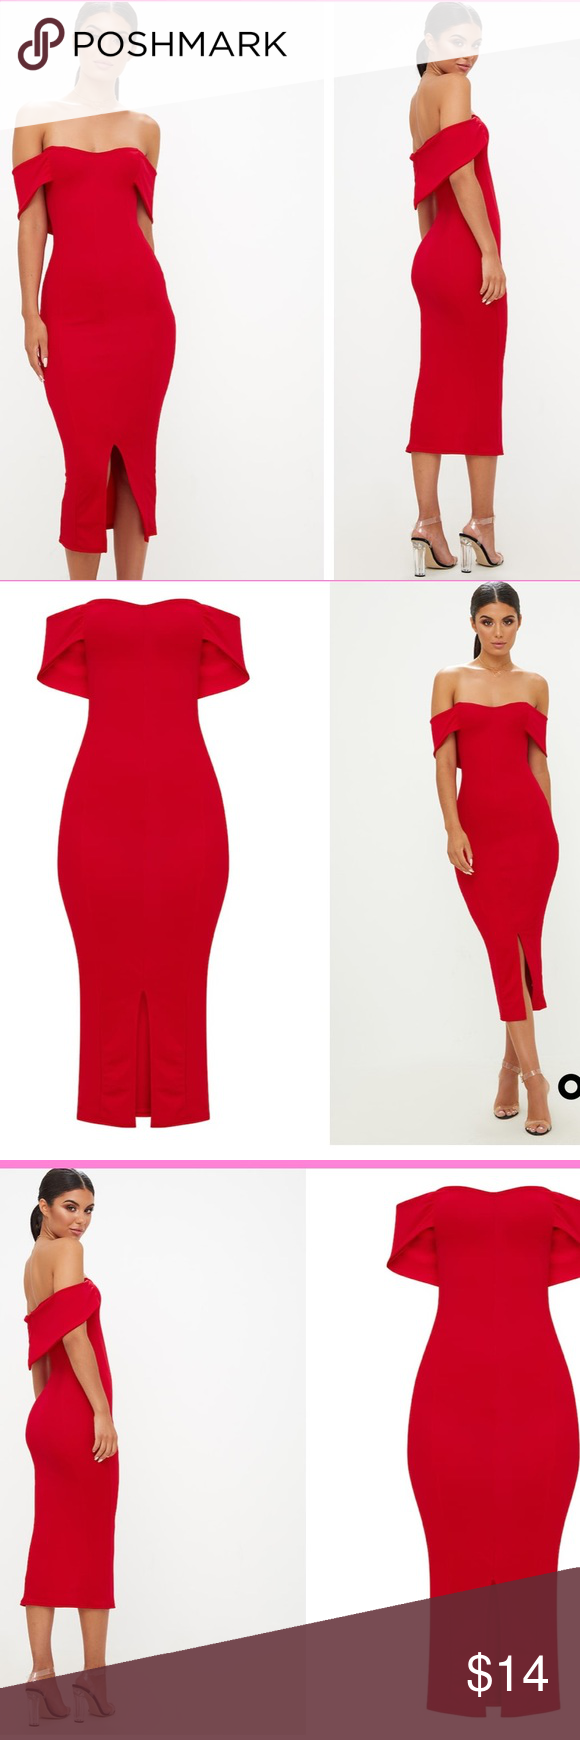 566e59d1a4 Red Longline Bardot Midi Dress Sweetheart neckline .split in front is 10  inches. Polyester  elastane. 14 1 2 inches underarm to underarm.